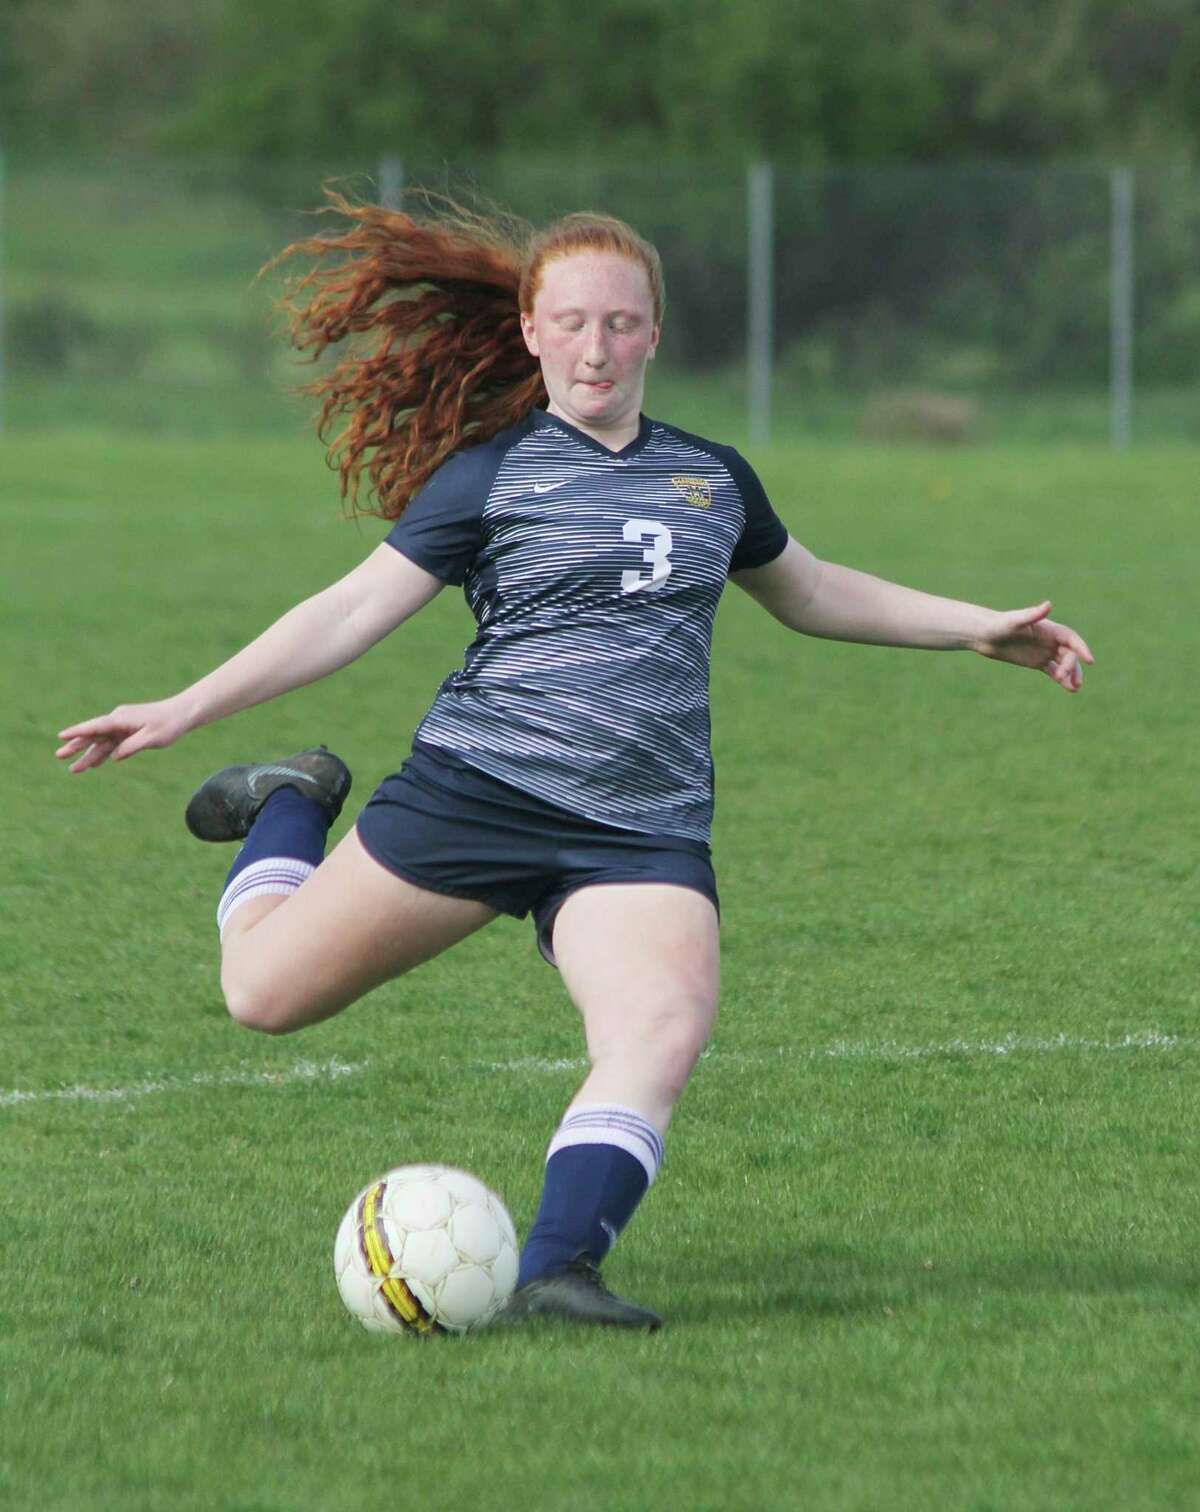 Manistee's Alora Sundbeck was an all-conference selection as a sophomore last season. (News Advocate file photo)